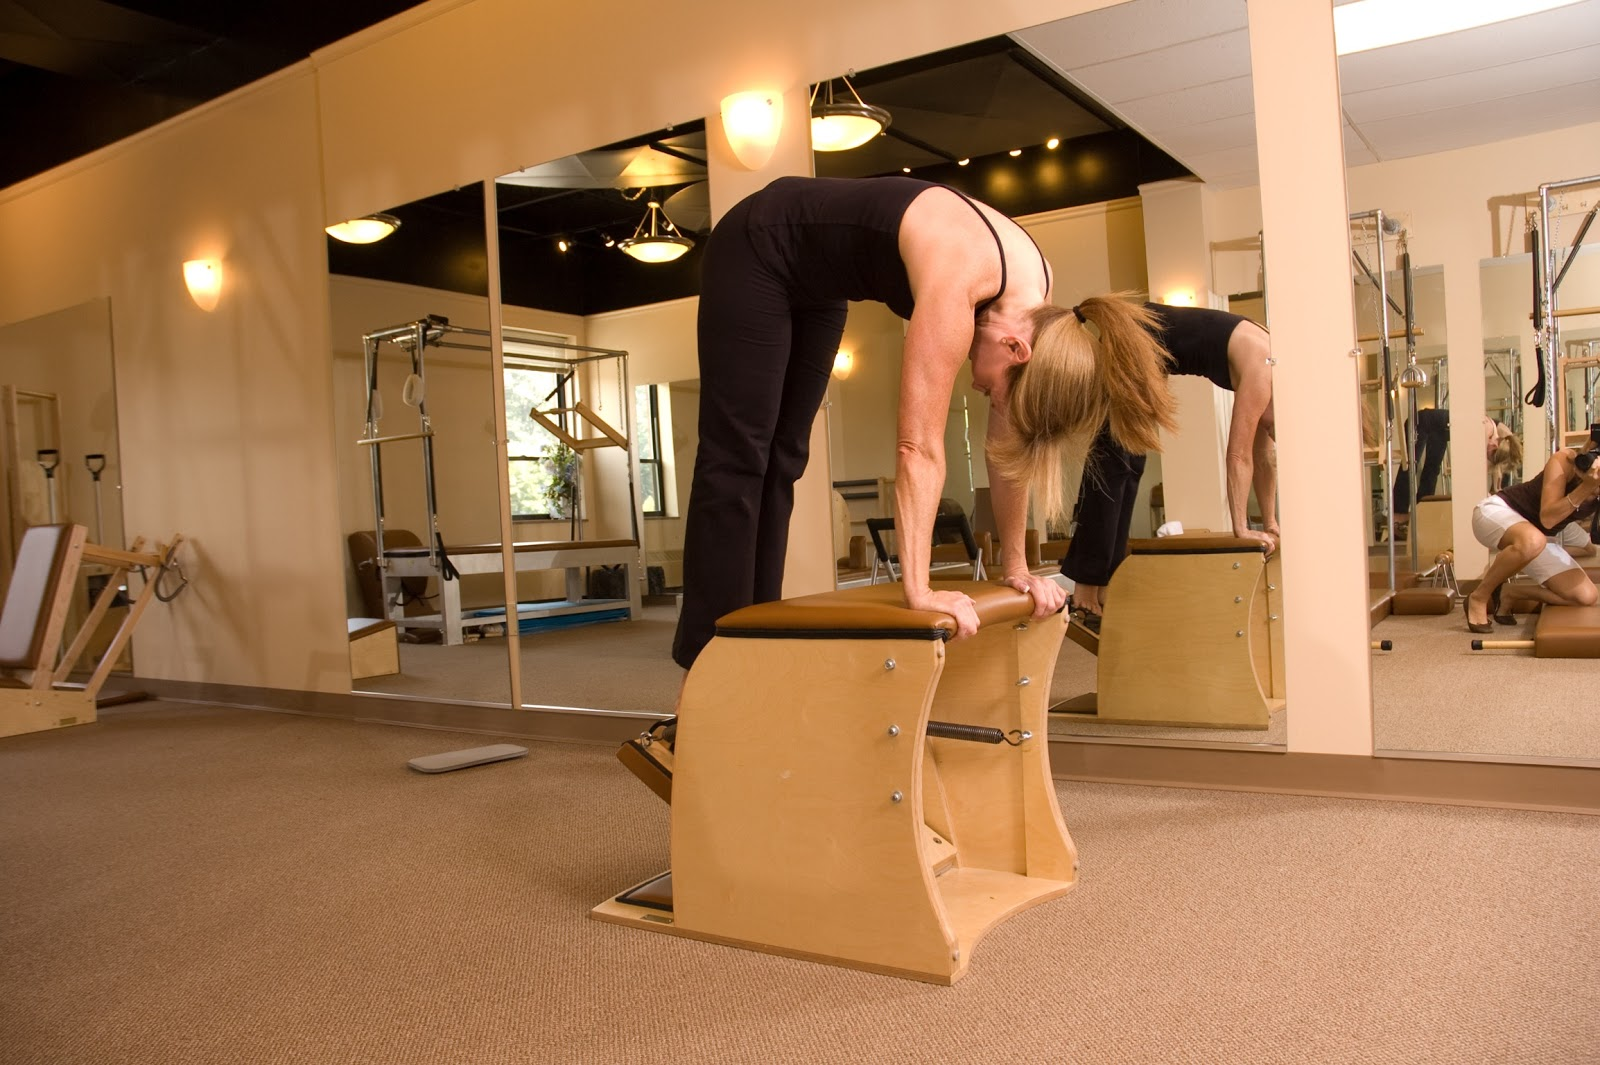 Owner of Touchstone Pilates, Lisa Pellow, stretches on equipment